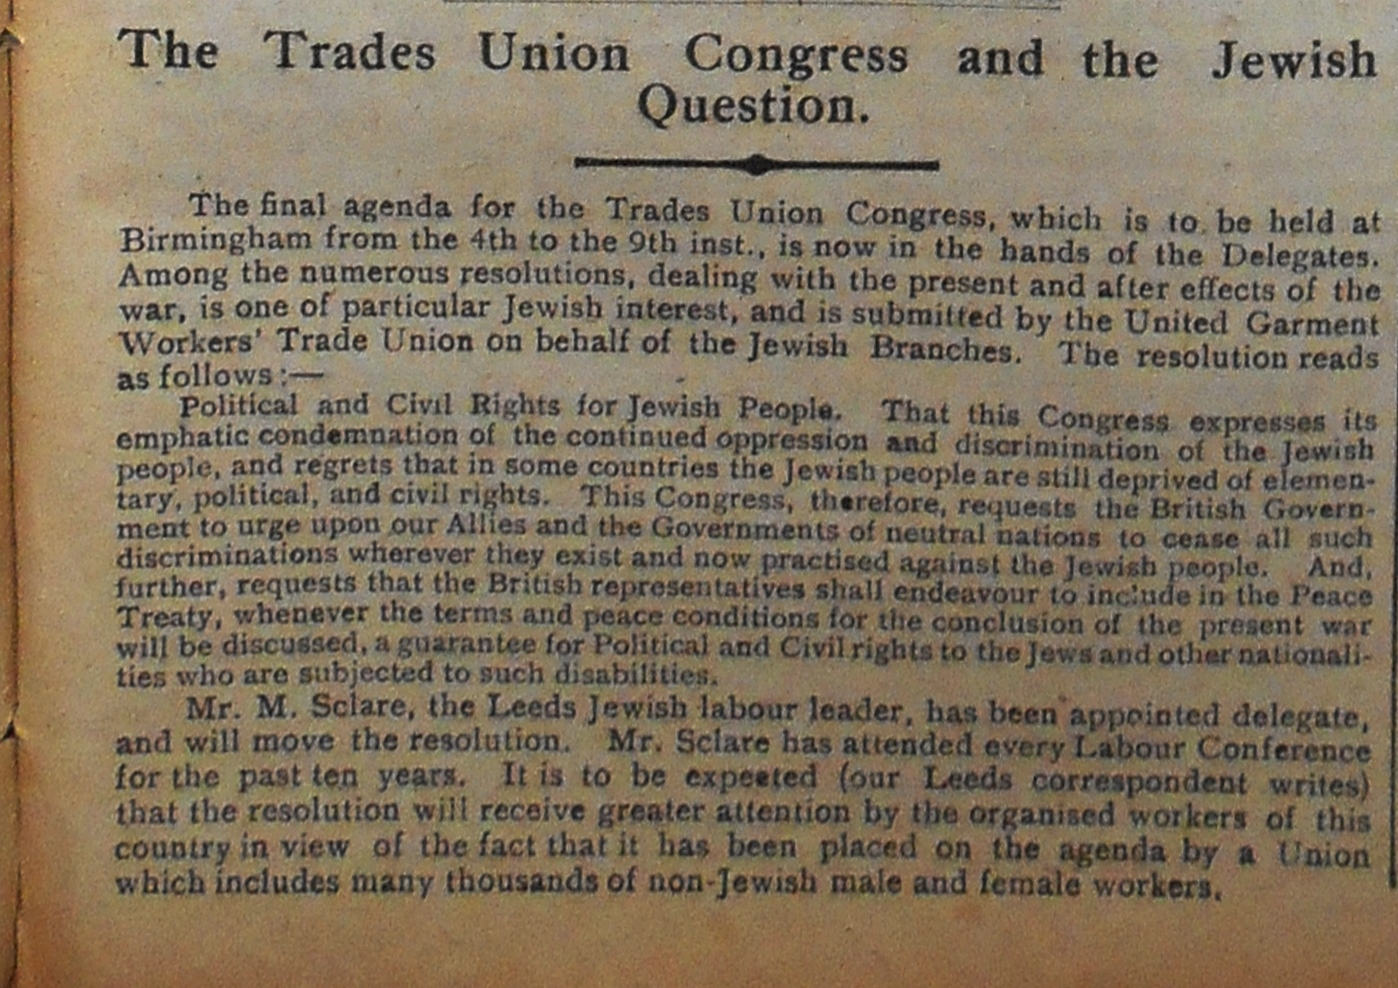 The Trades Union Congress and the Jewish Question. Jewish Chronicle, 1 September 1916.